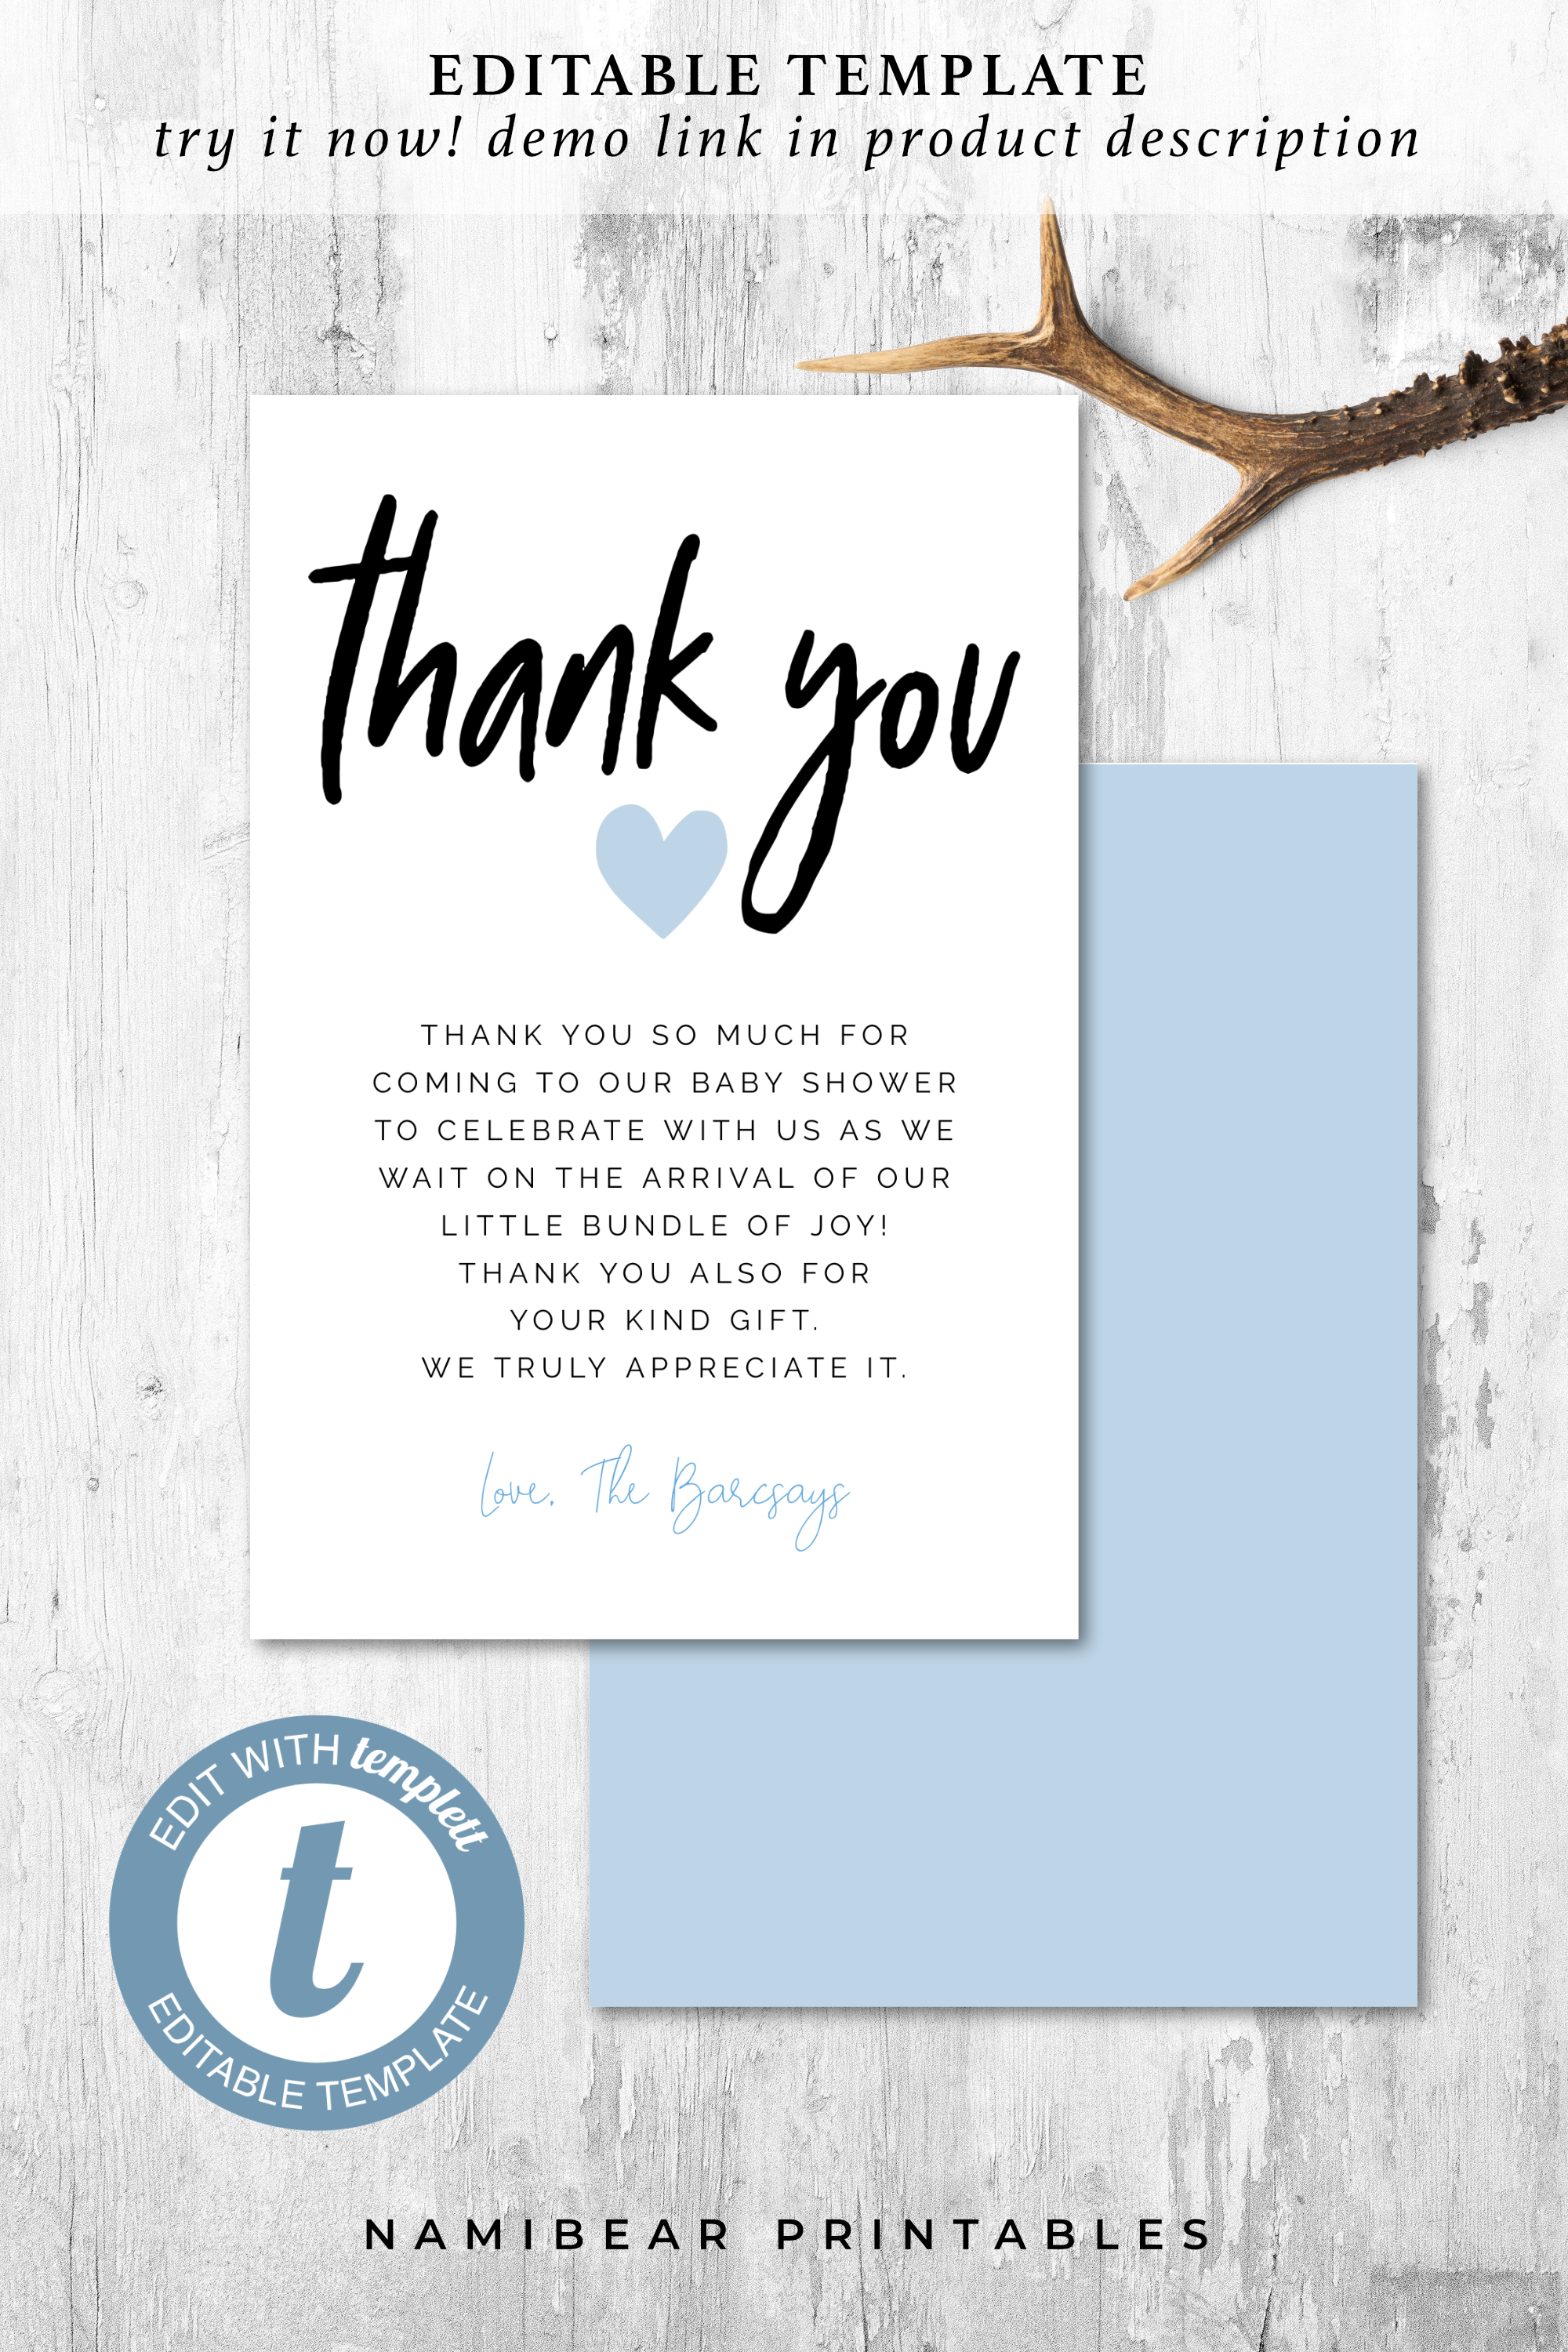 Printable Modern Baby Shower Thank You Card Editable Etsy Baby Shower Thank You Baby Shower Thank You Cards Heart Baby Shower